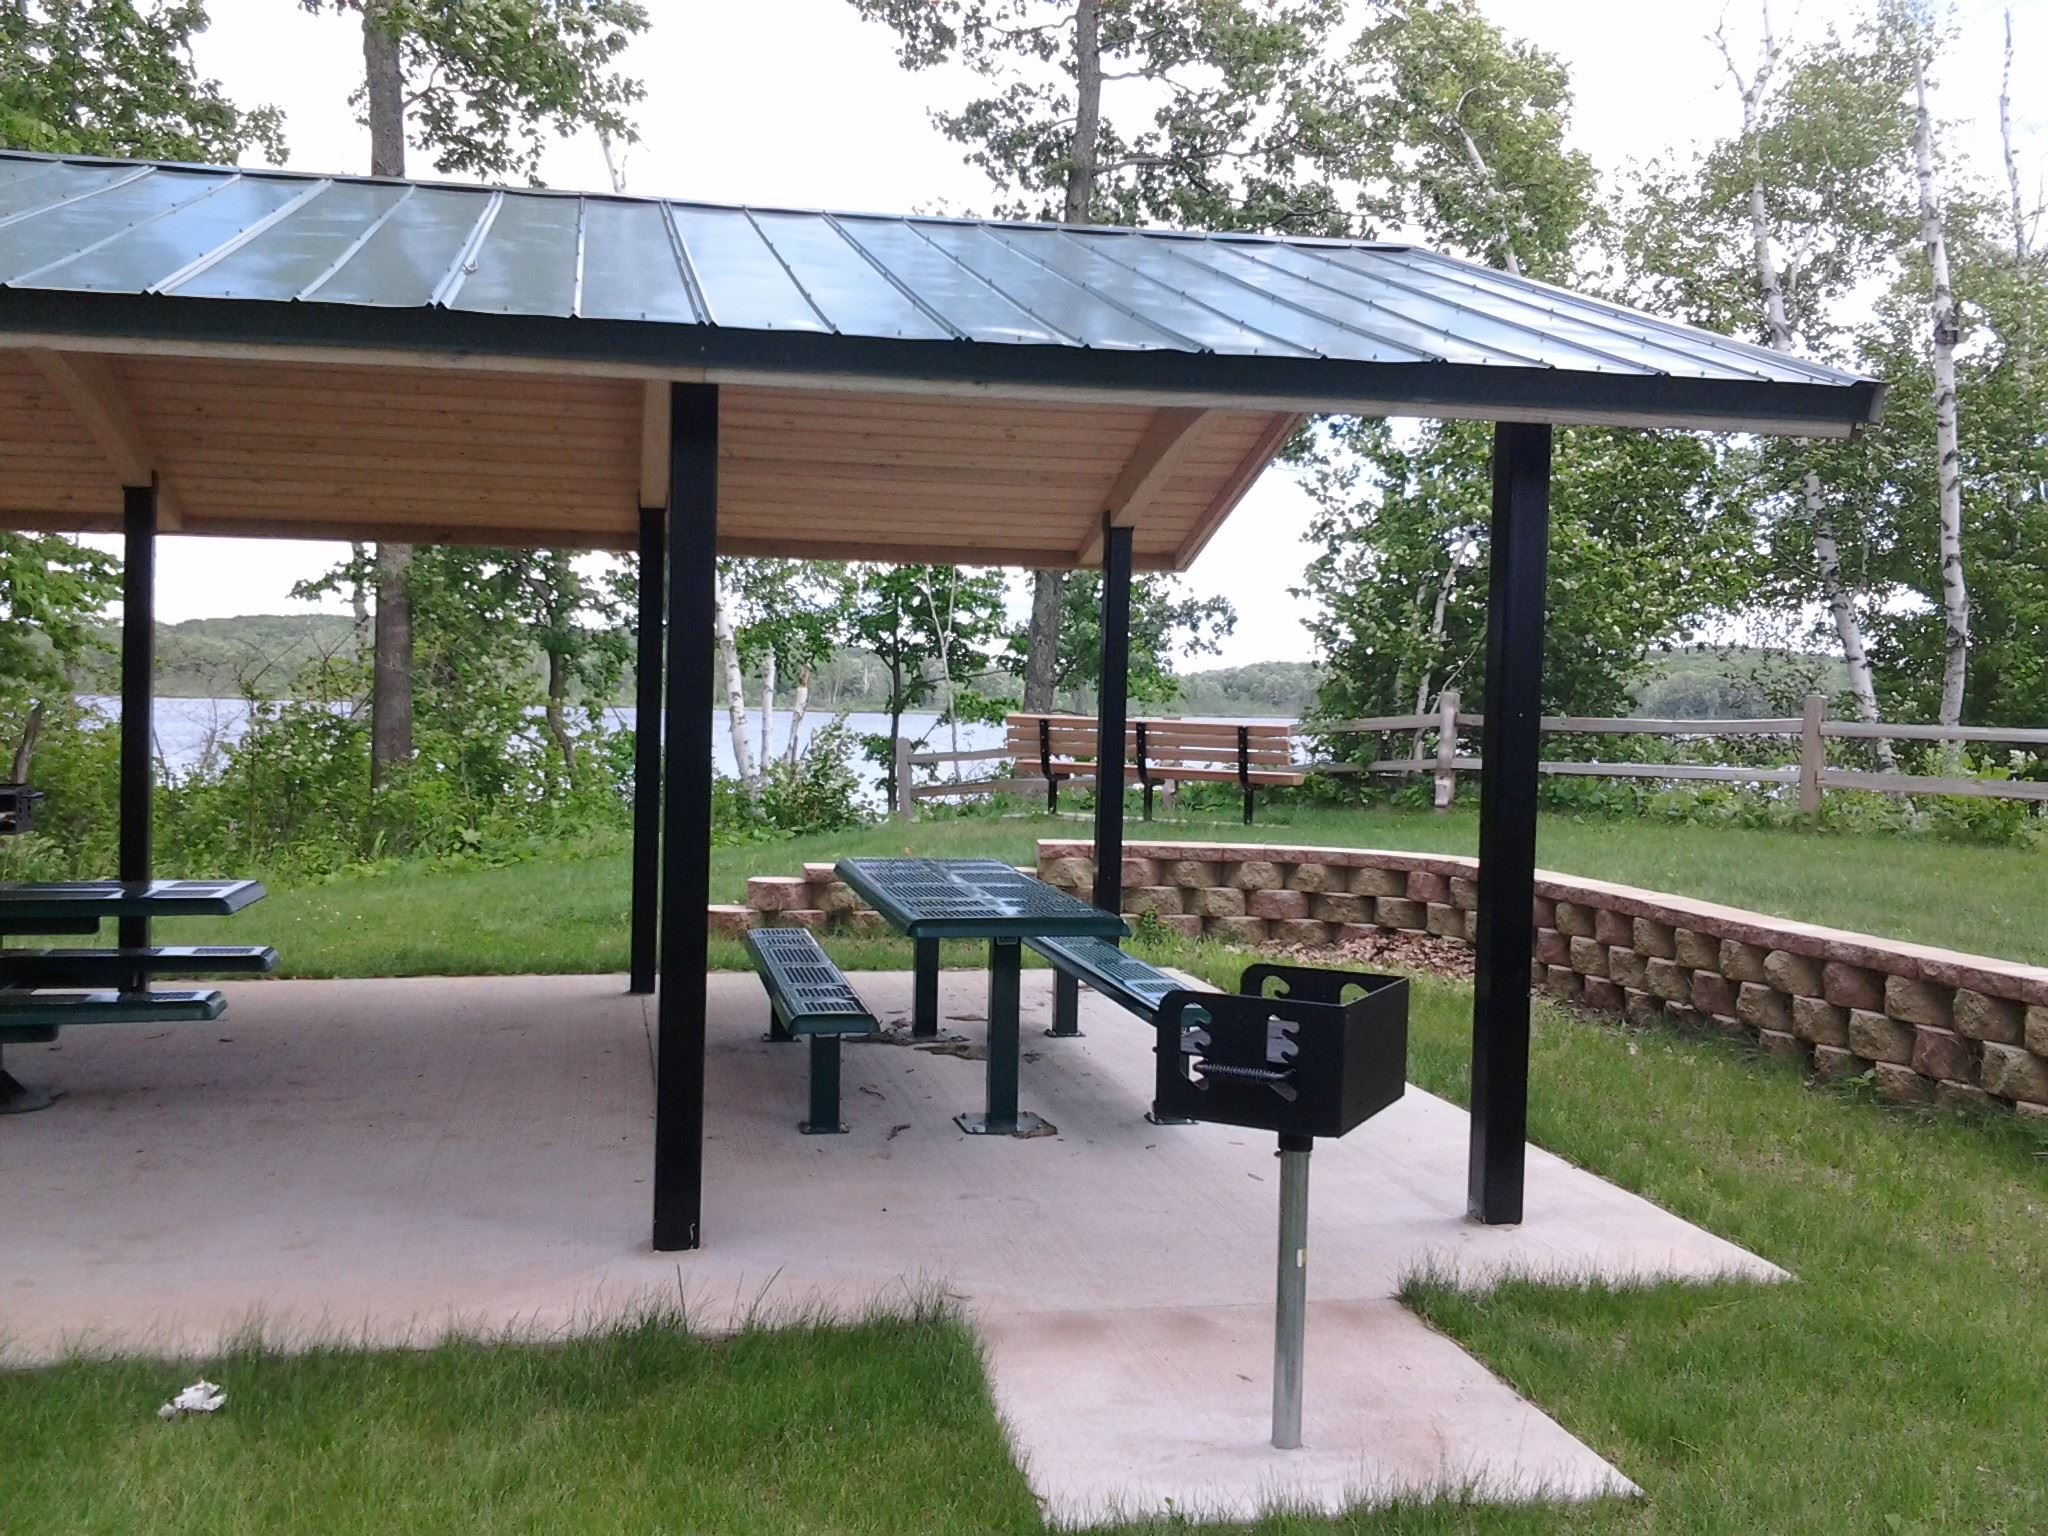 Picnic Shelter at Milford Mine Memorial Park